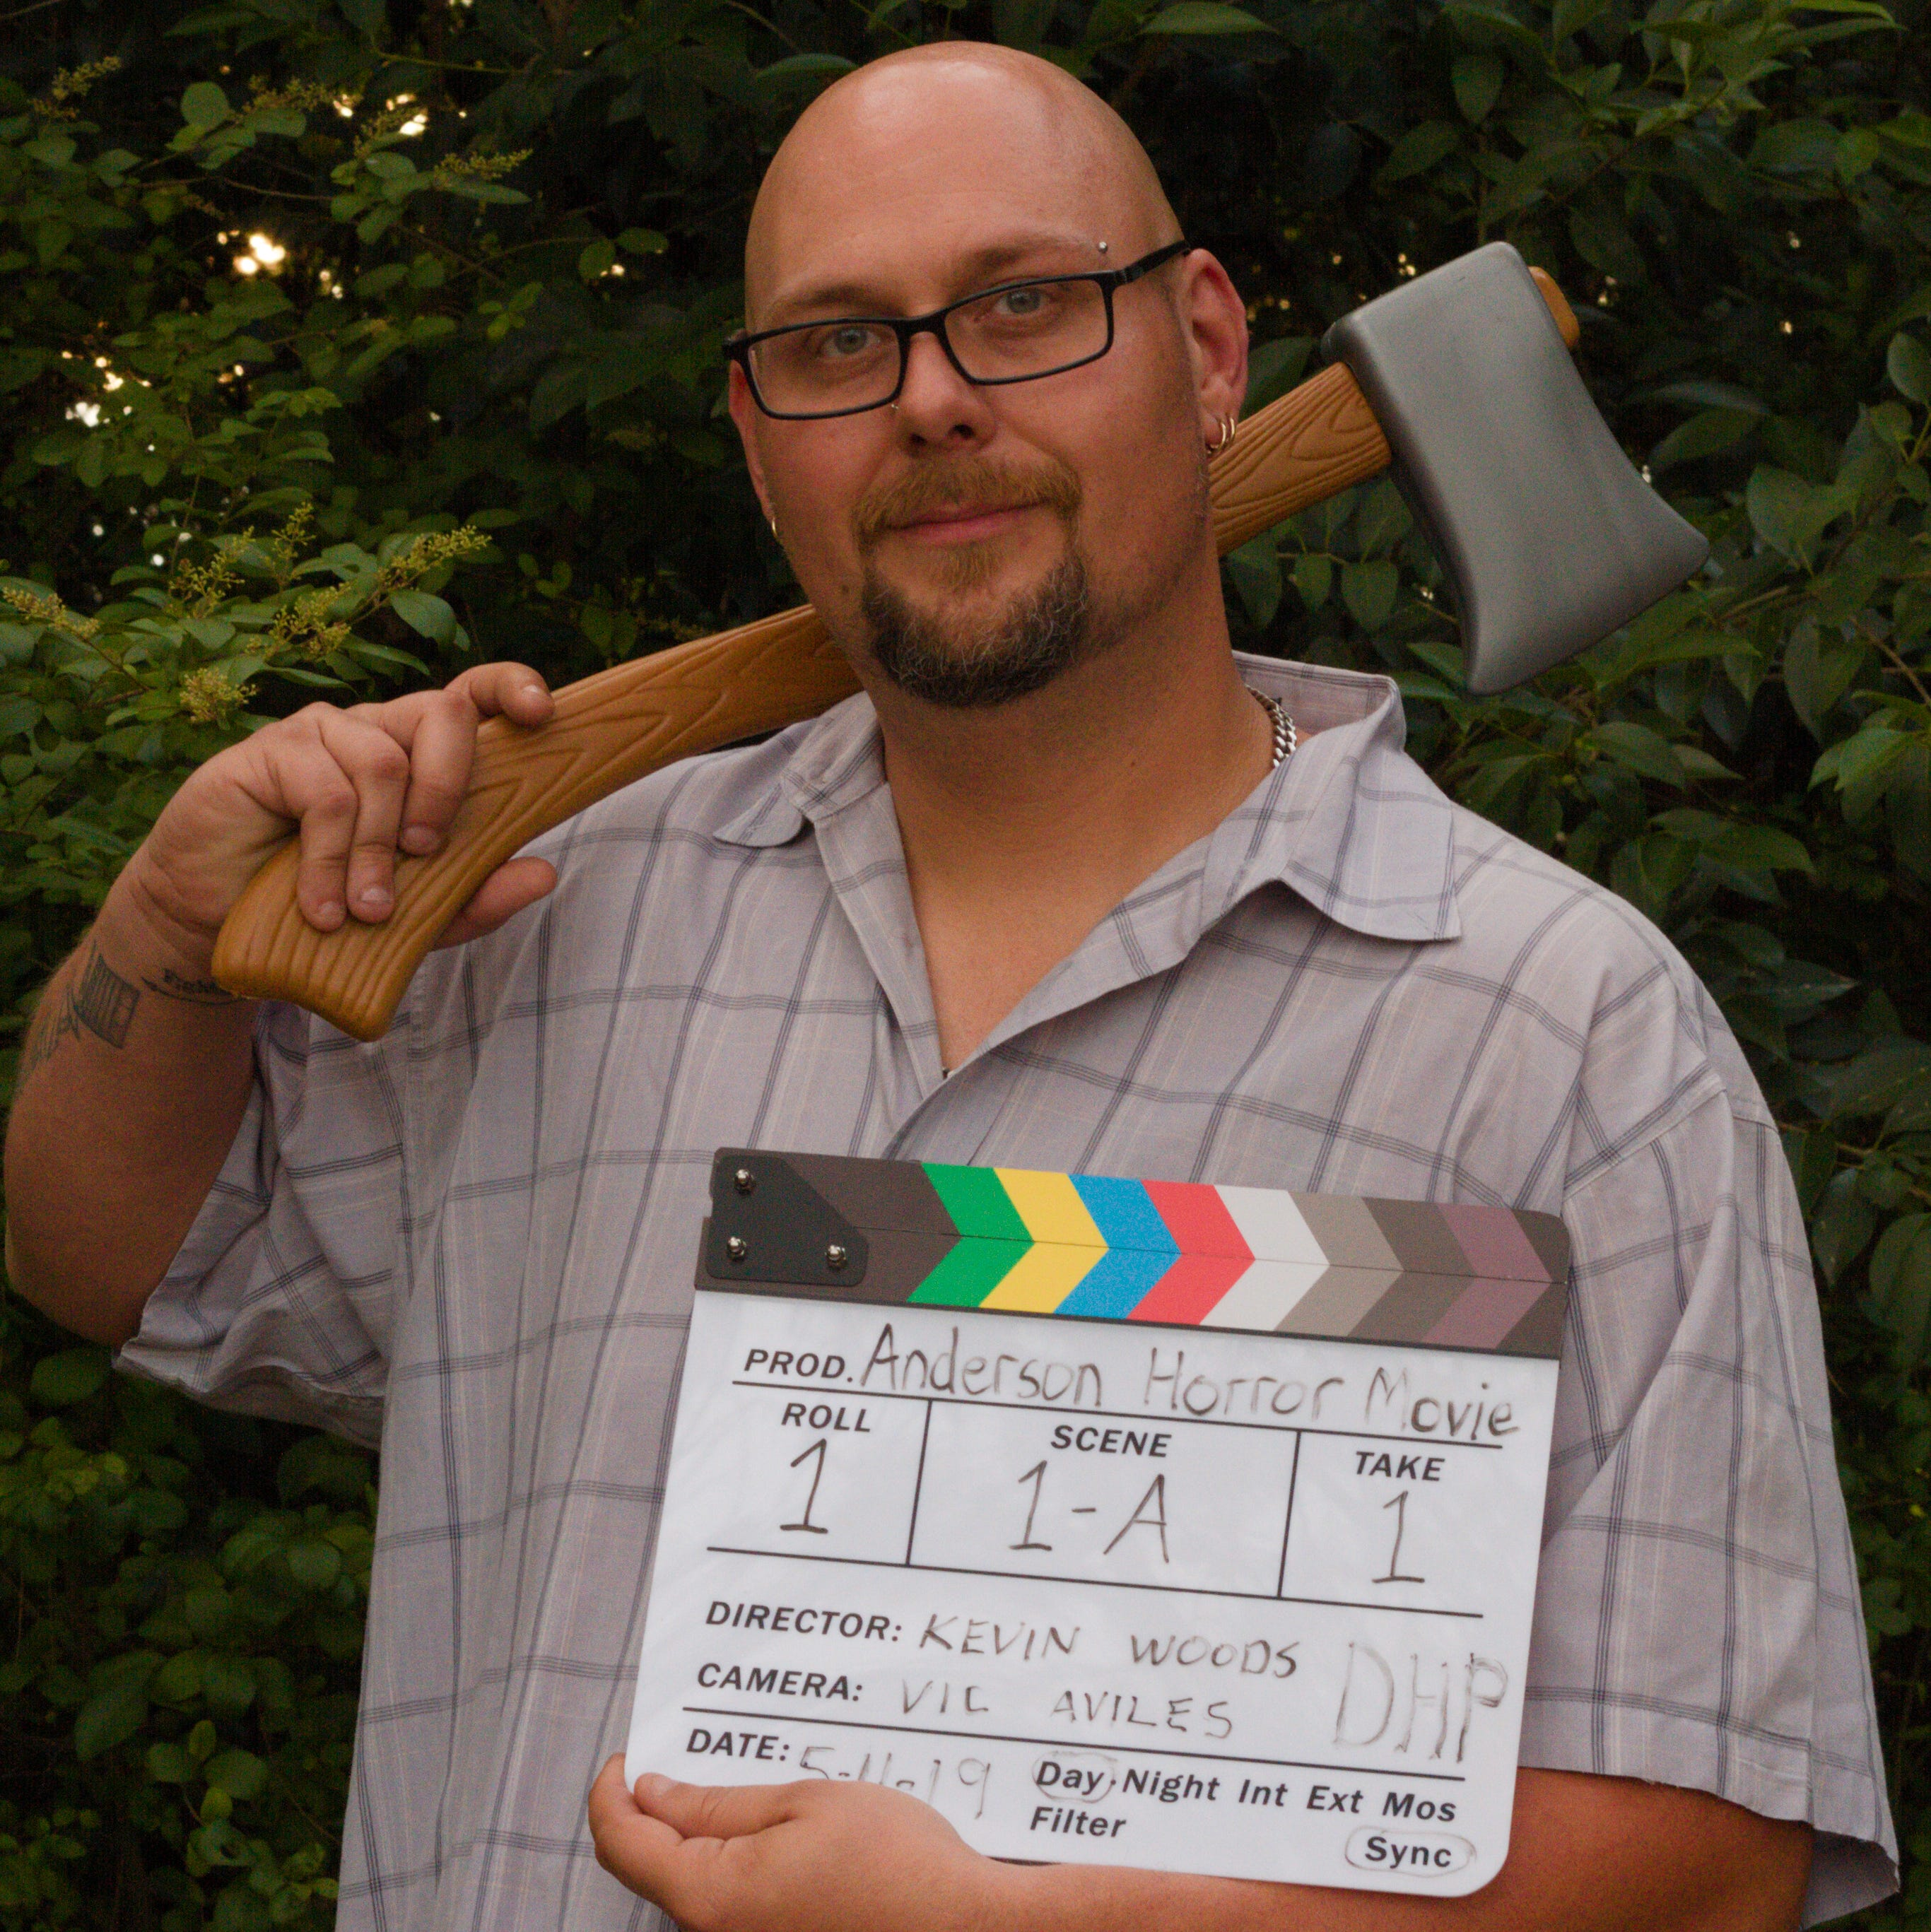 Anderson County filmmaker shooting horror film using hometown actors and crew only